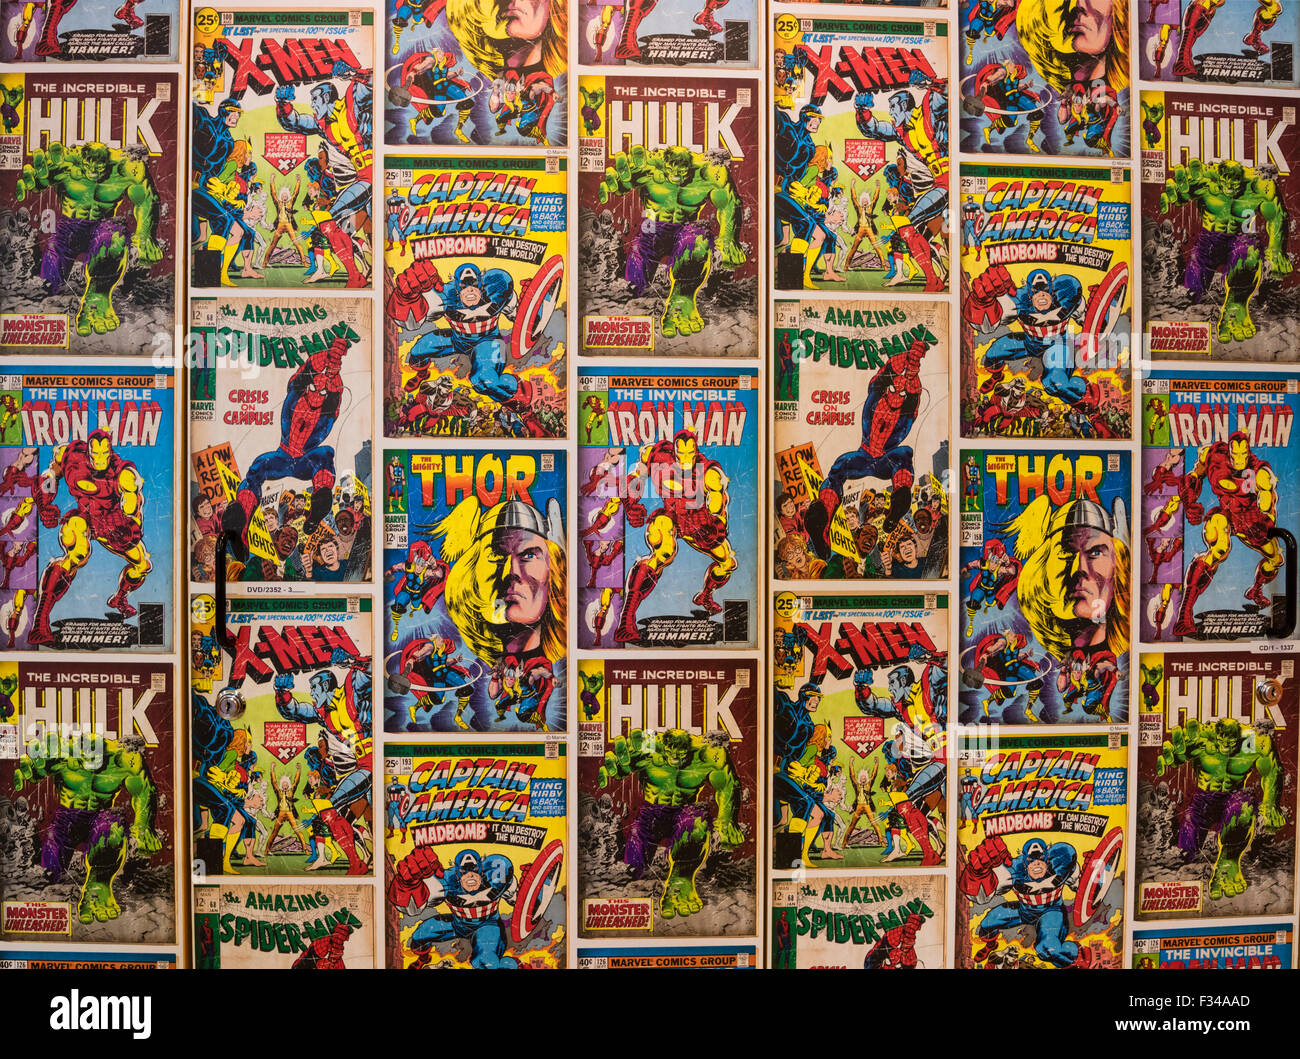 Comic Book Cover Background : Wallpaper display created from covers of marvel comics